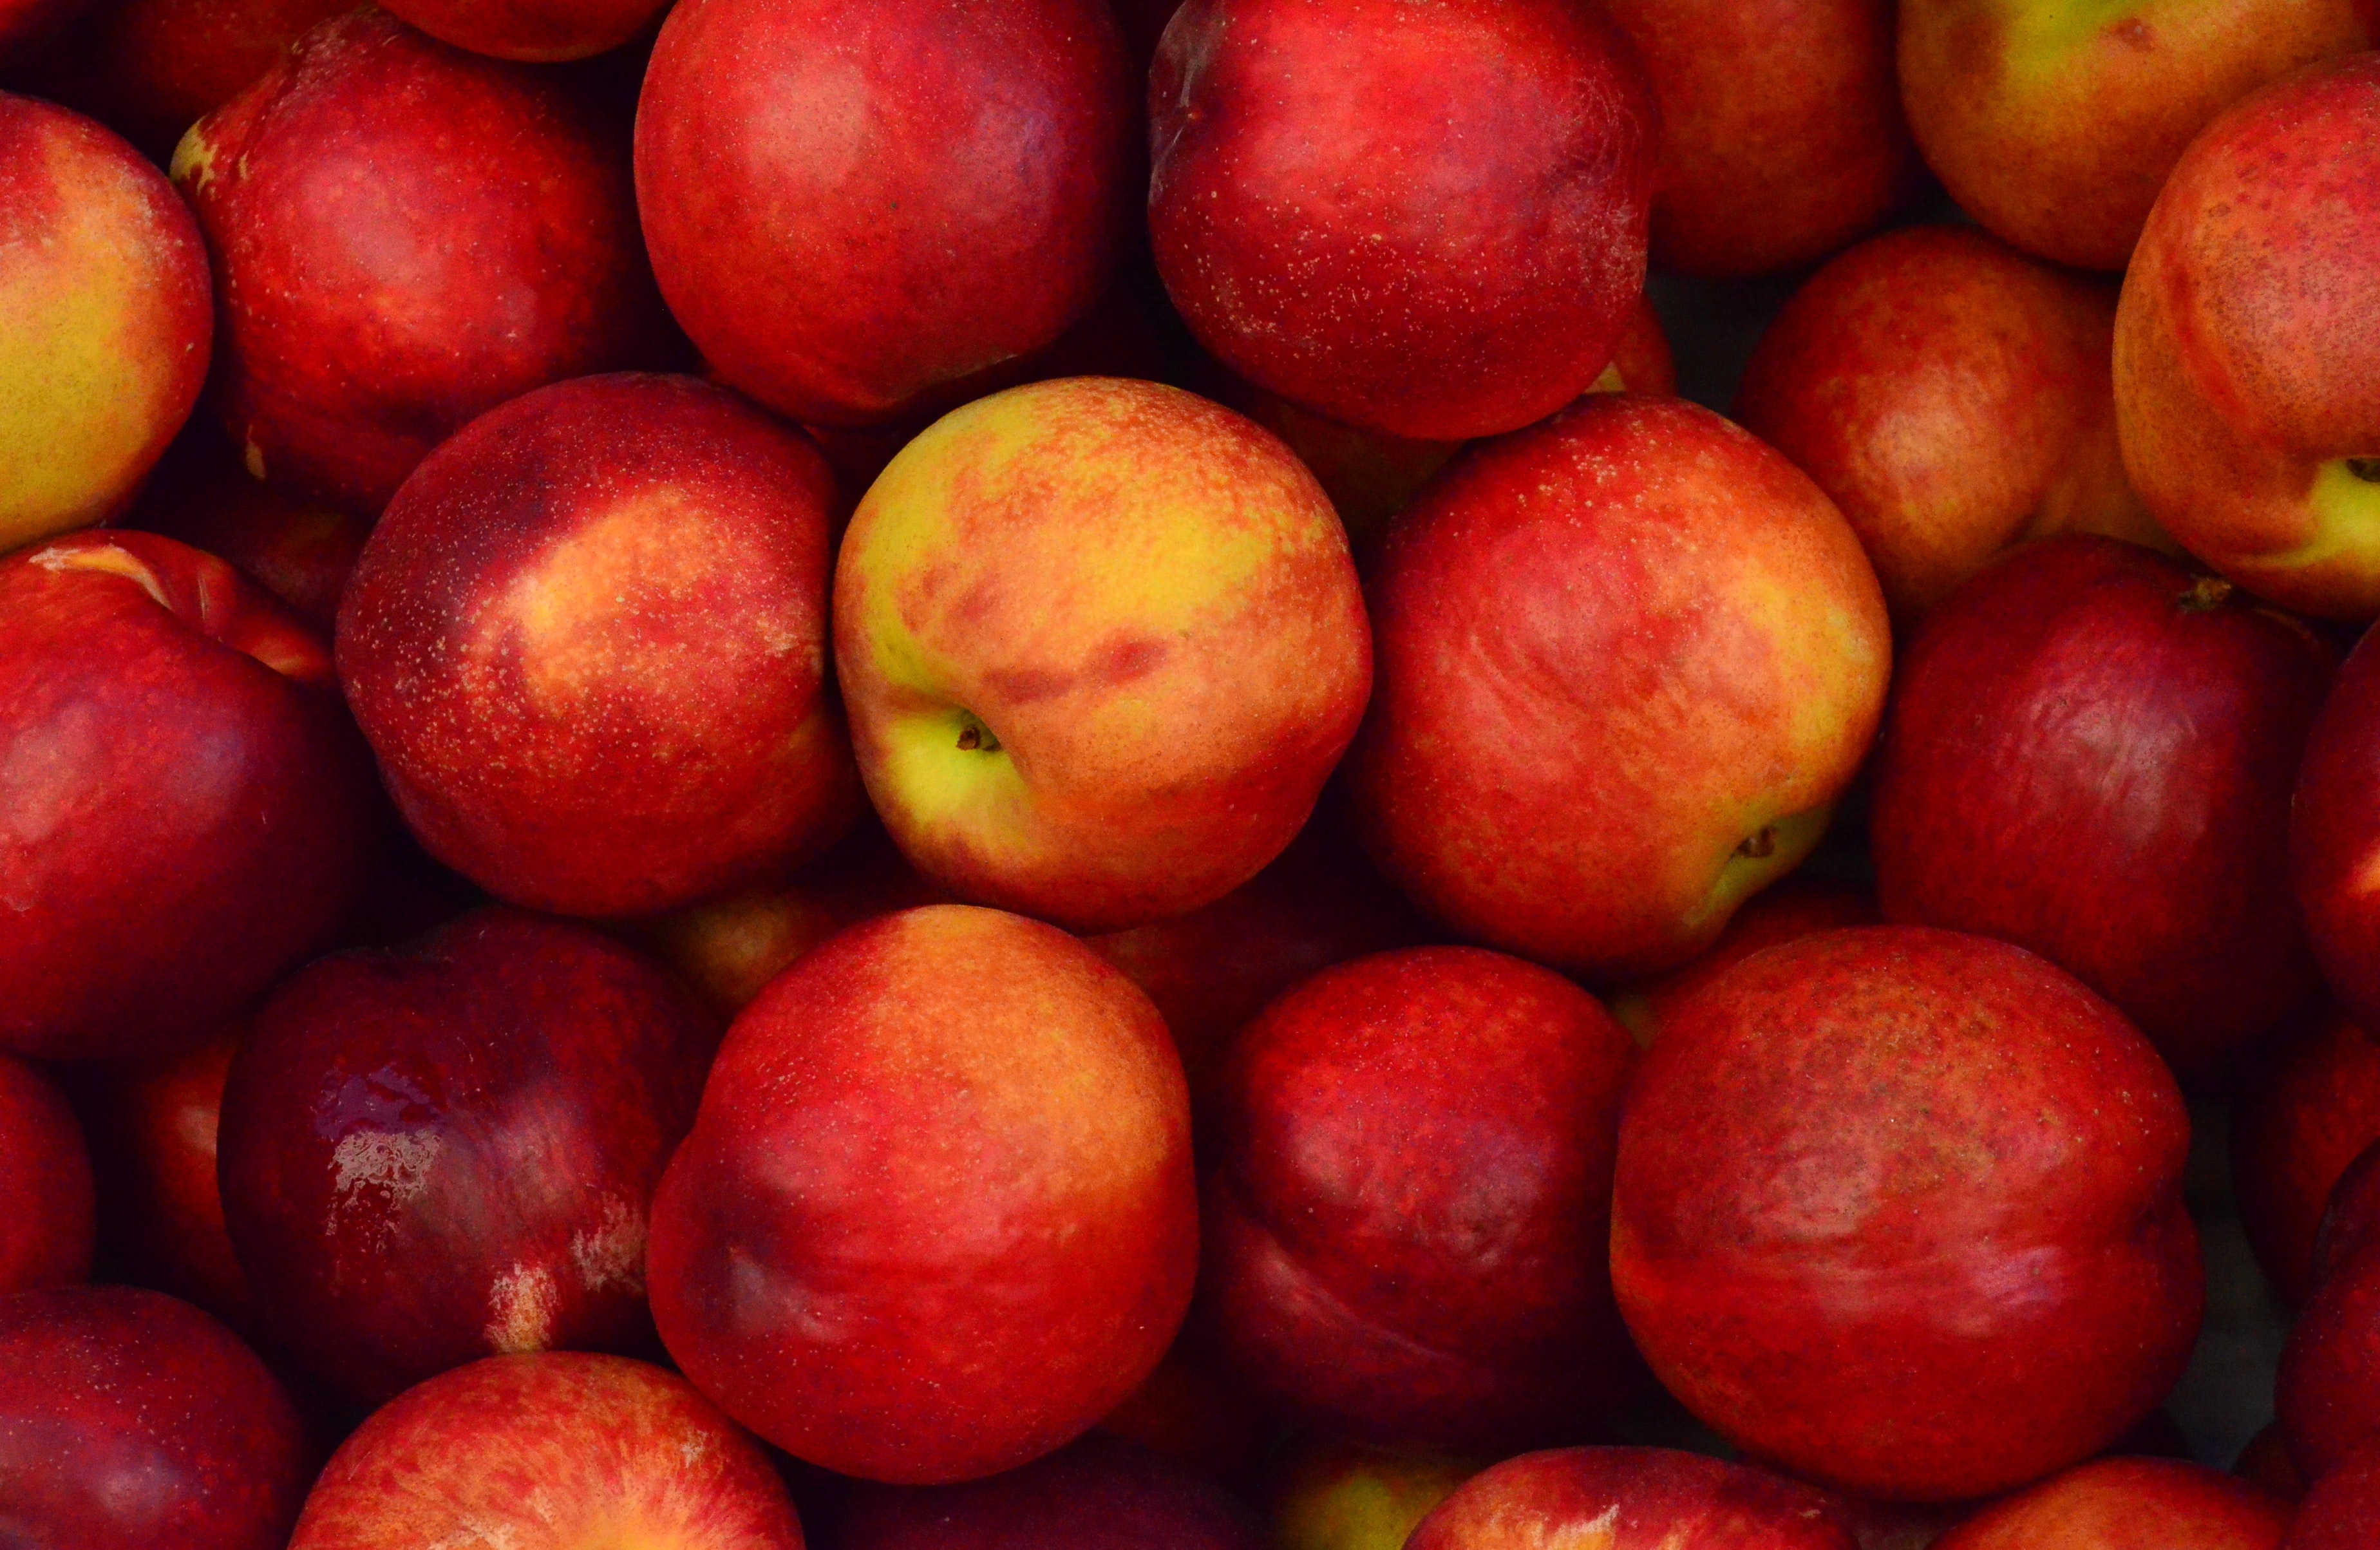 A collection of red juicy and fresh apples